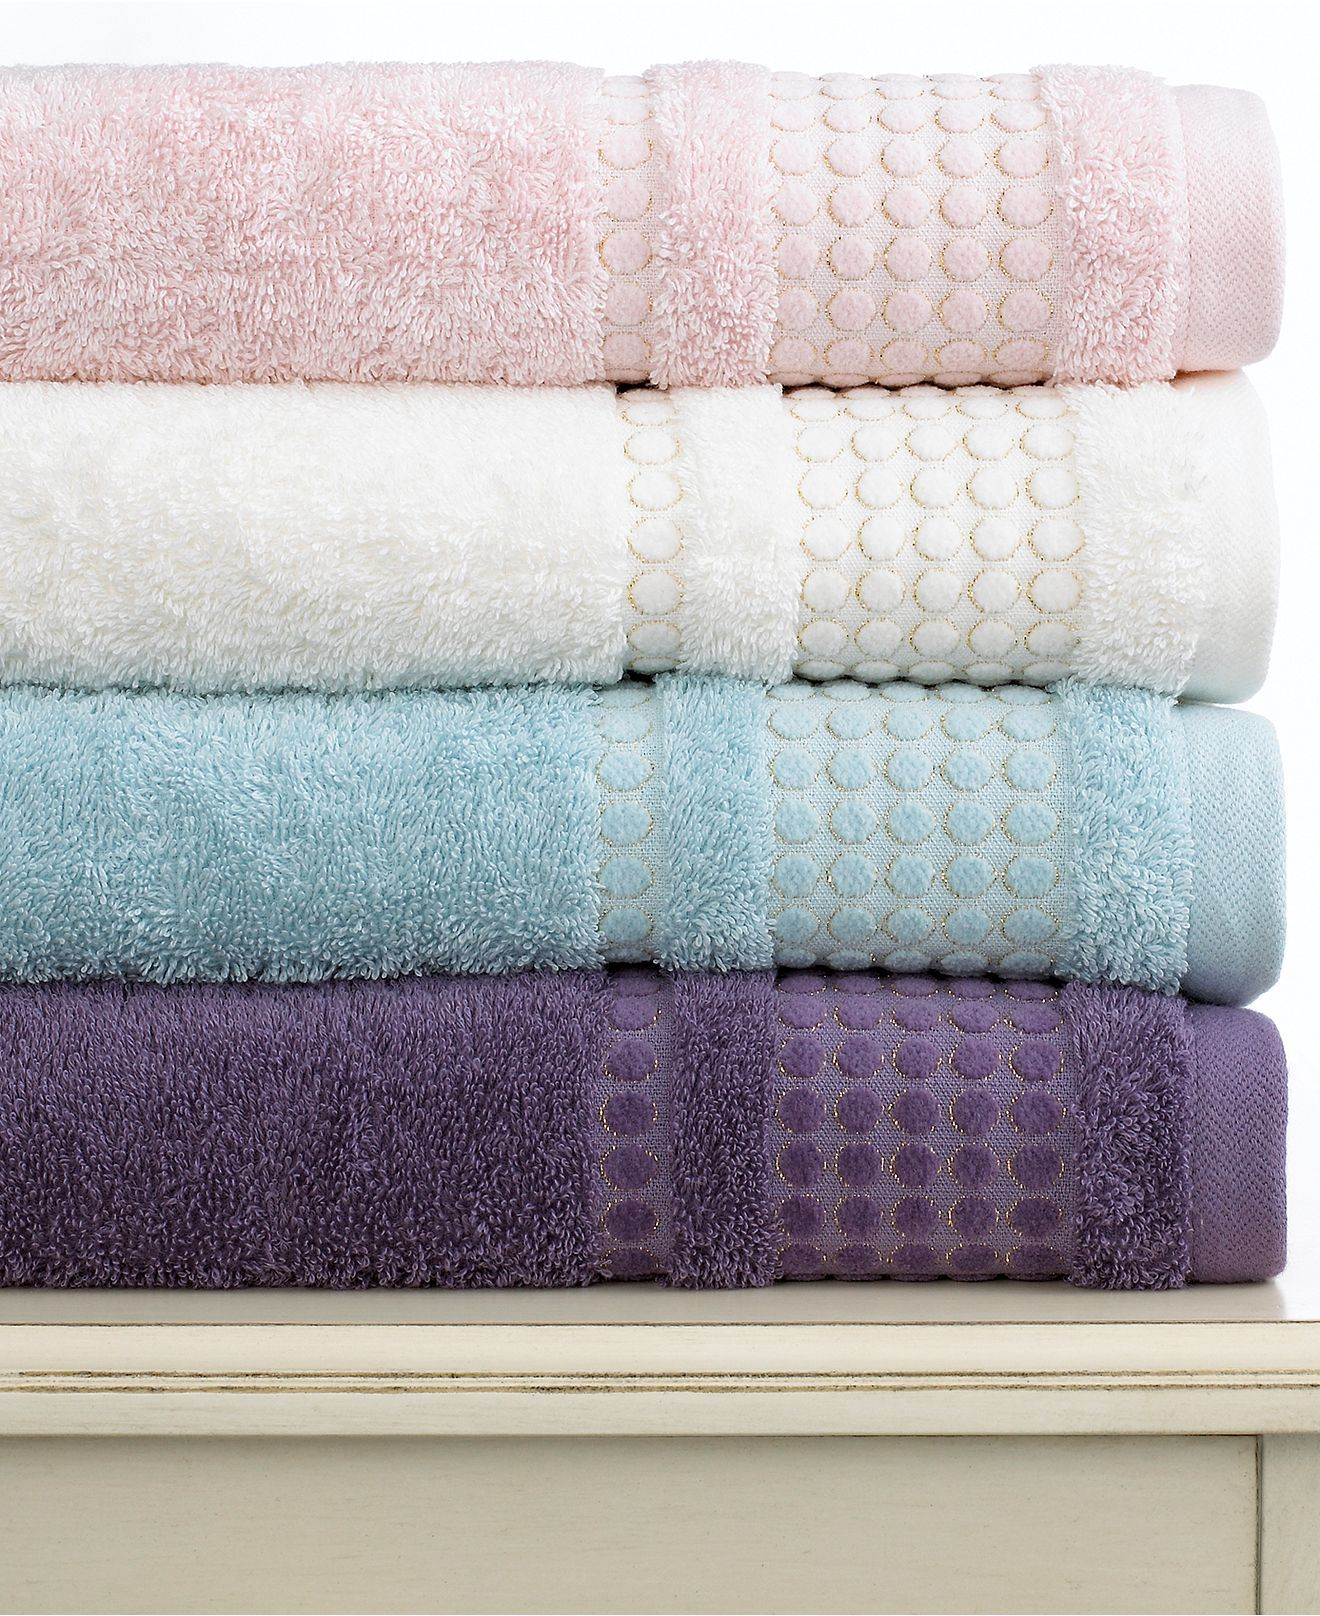 Bianca Bath Towels Art Deco Collection Bath Towels Bed Bath - Lavender towels for small bathroom ideas